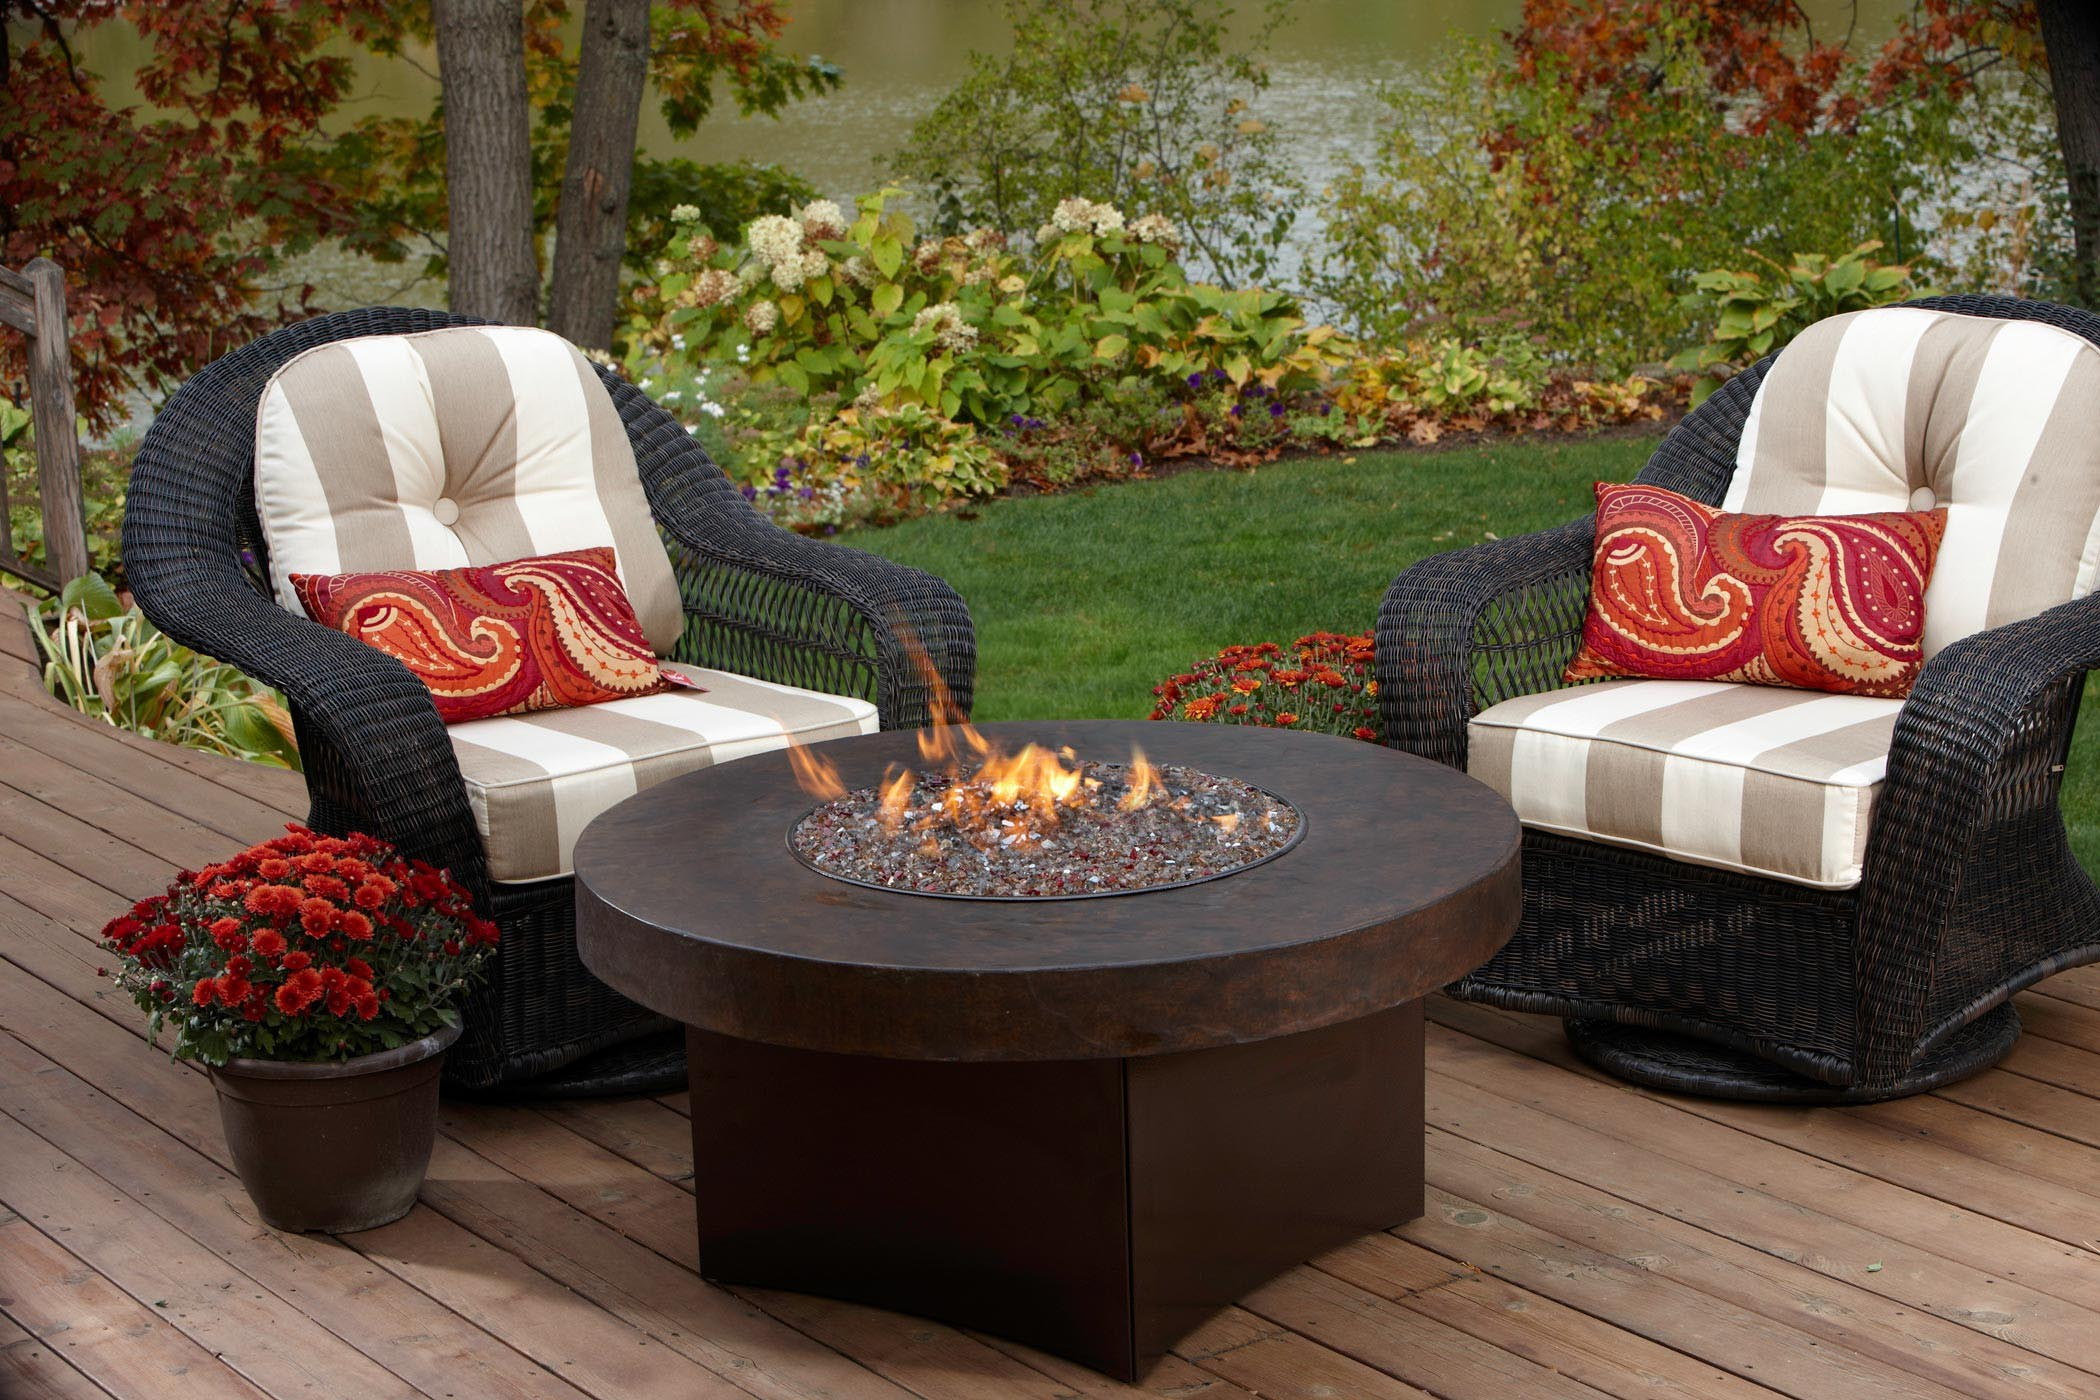 Patio coffee table with fire pit coffee table design ideas Relaxed backyard deck ideas